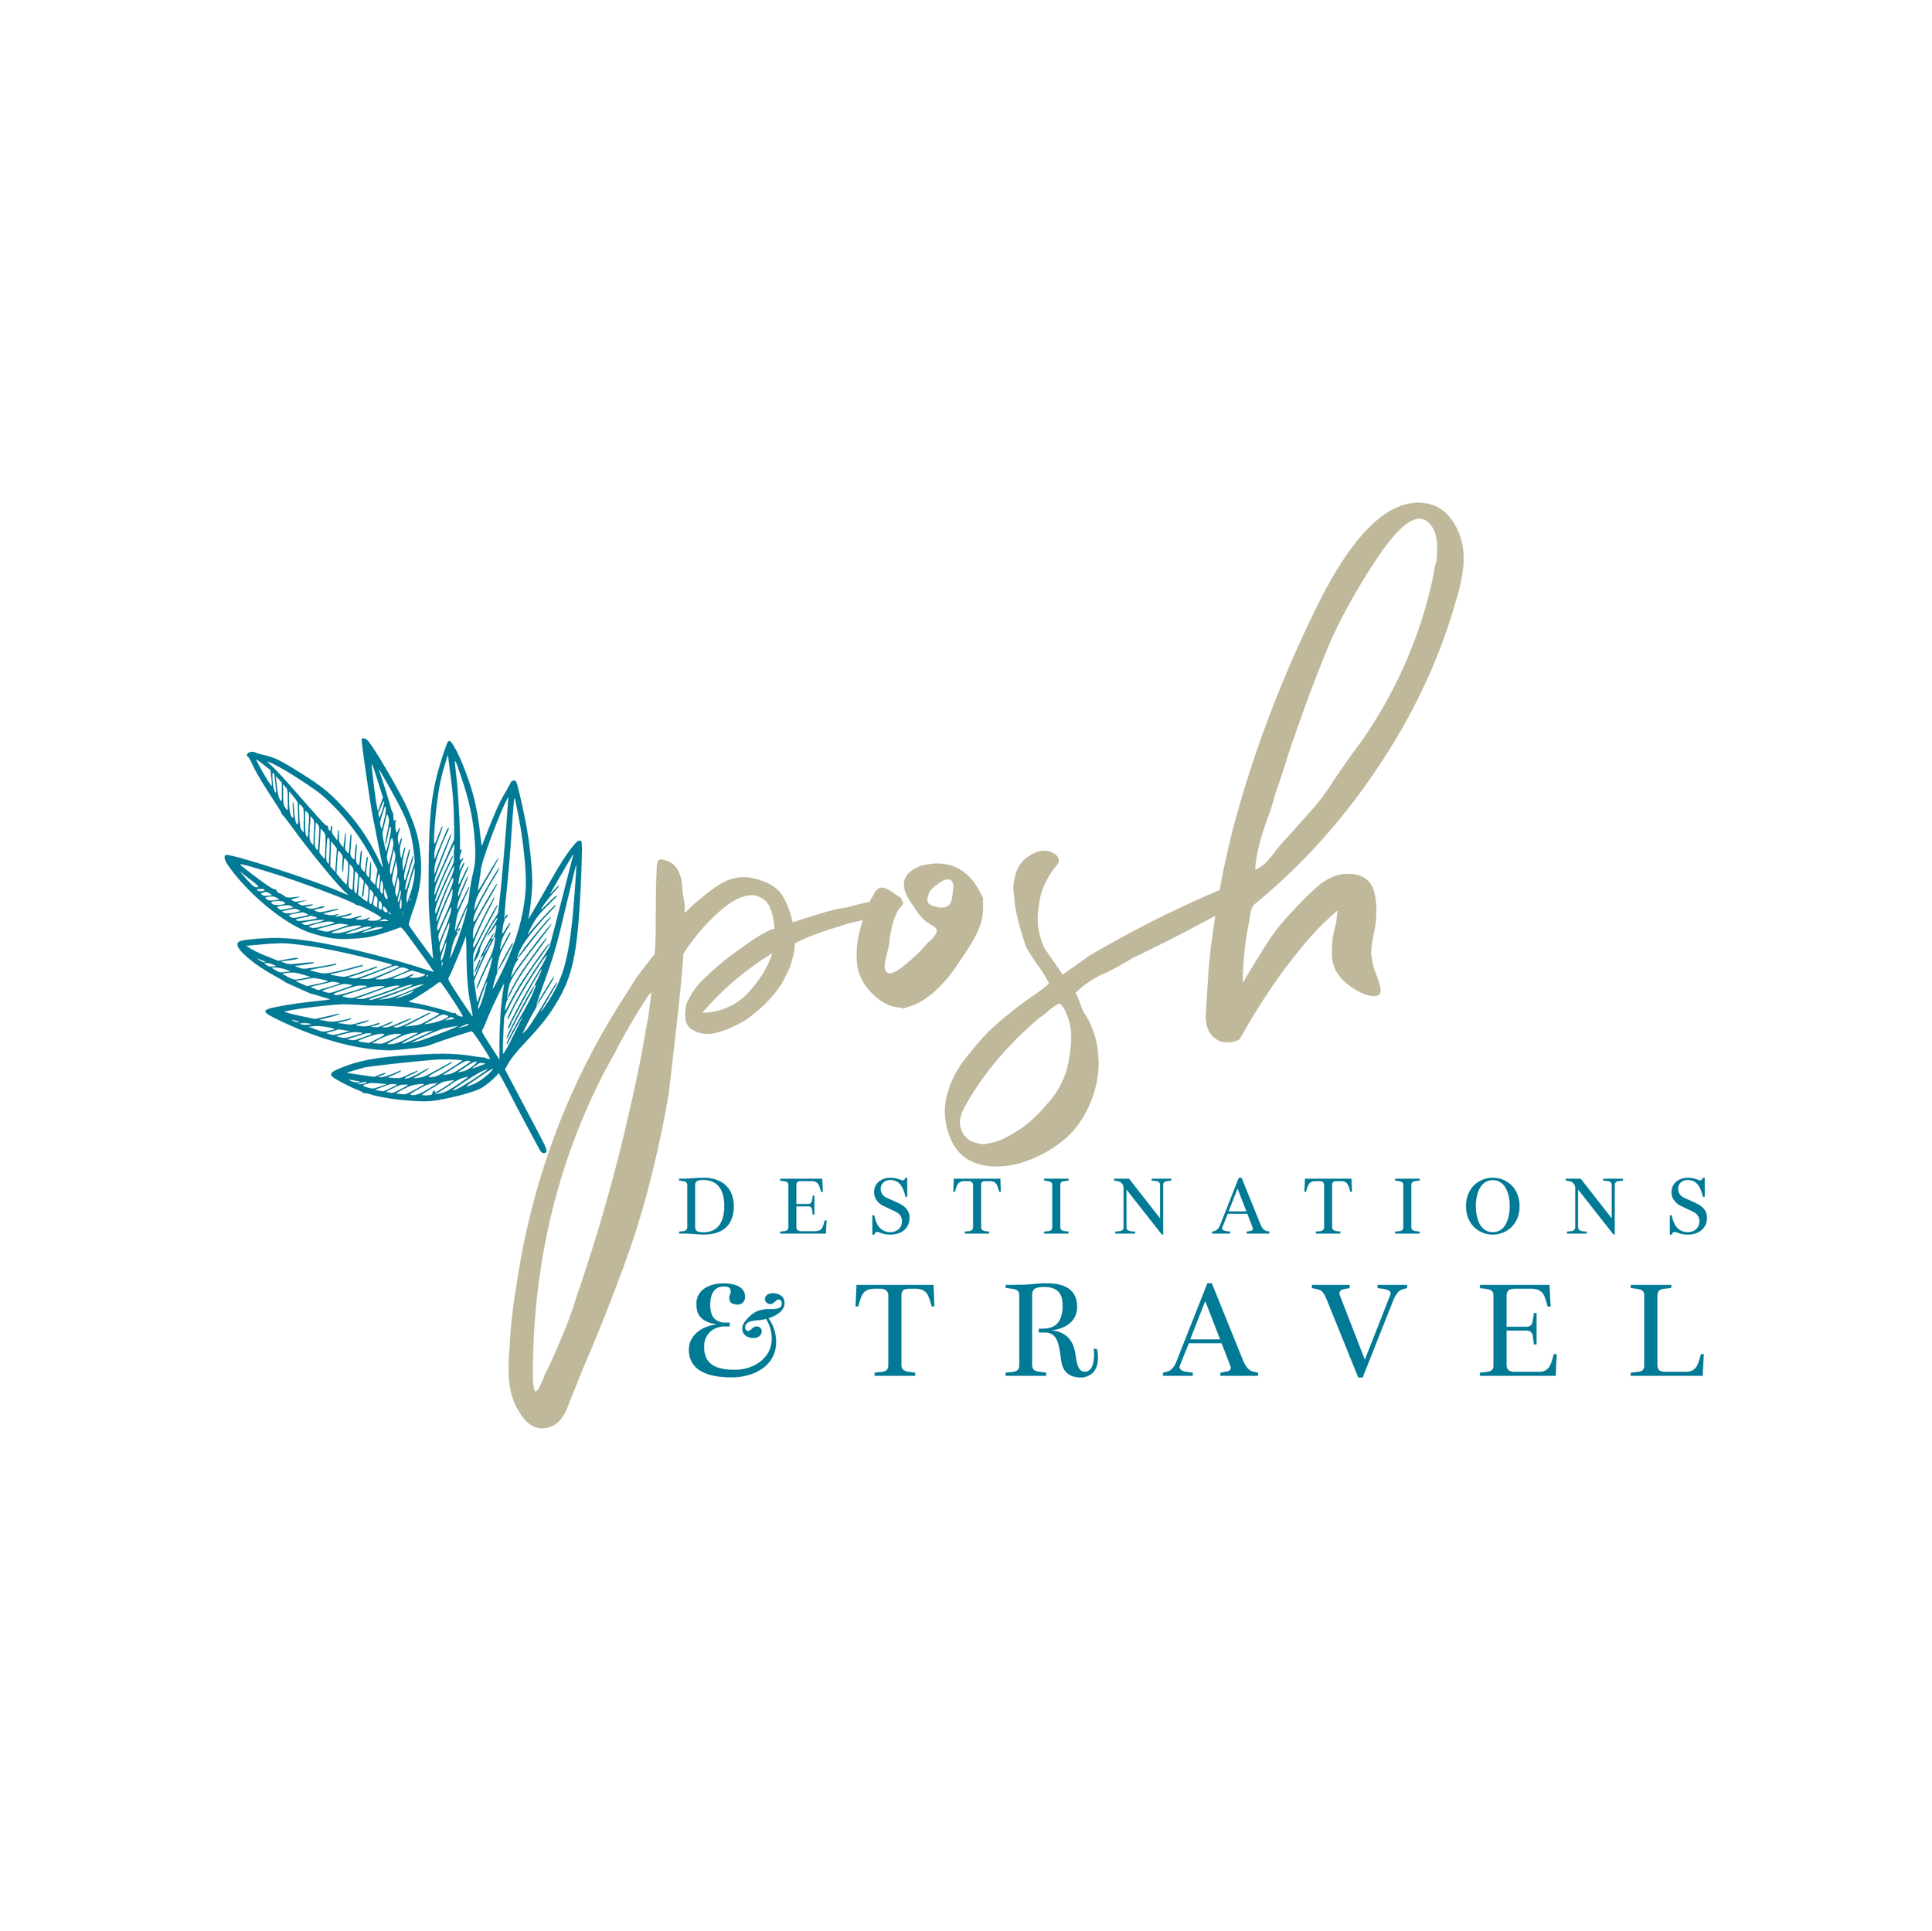 Posh Destinations & Travel